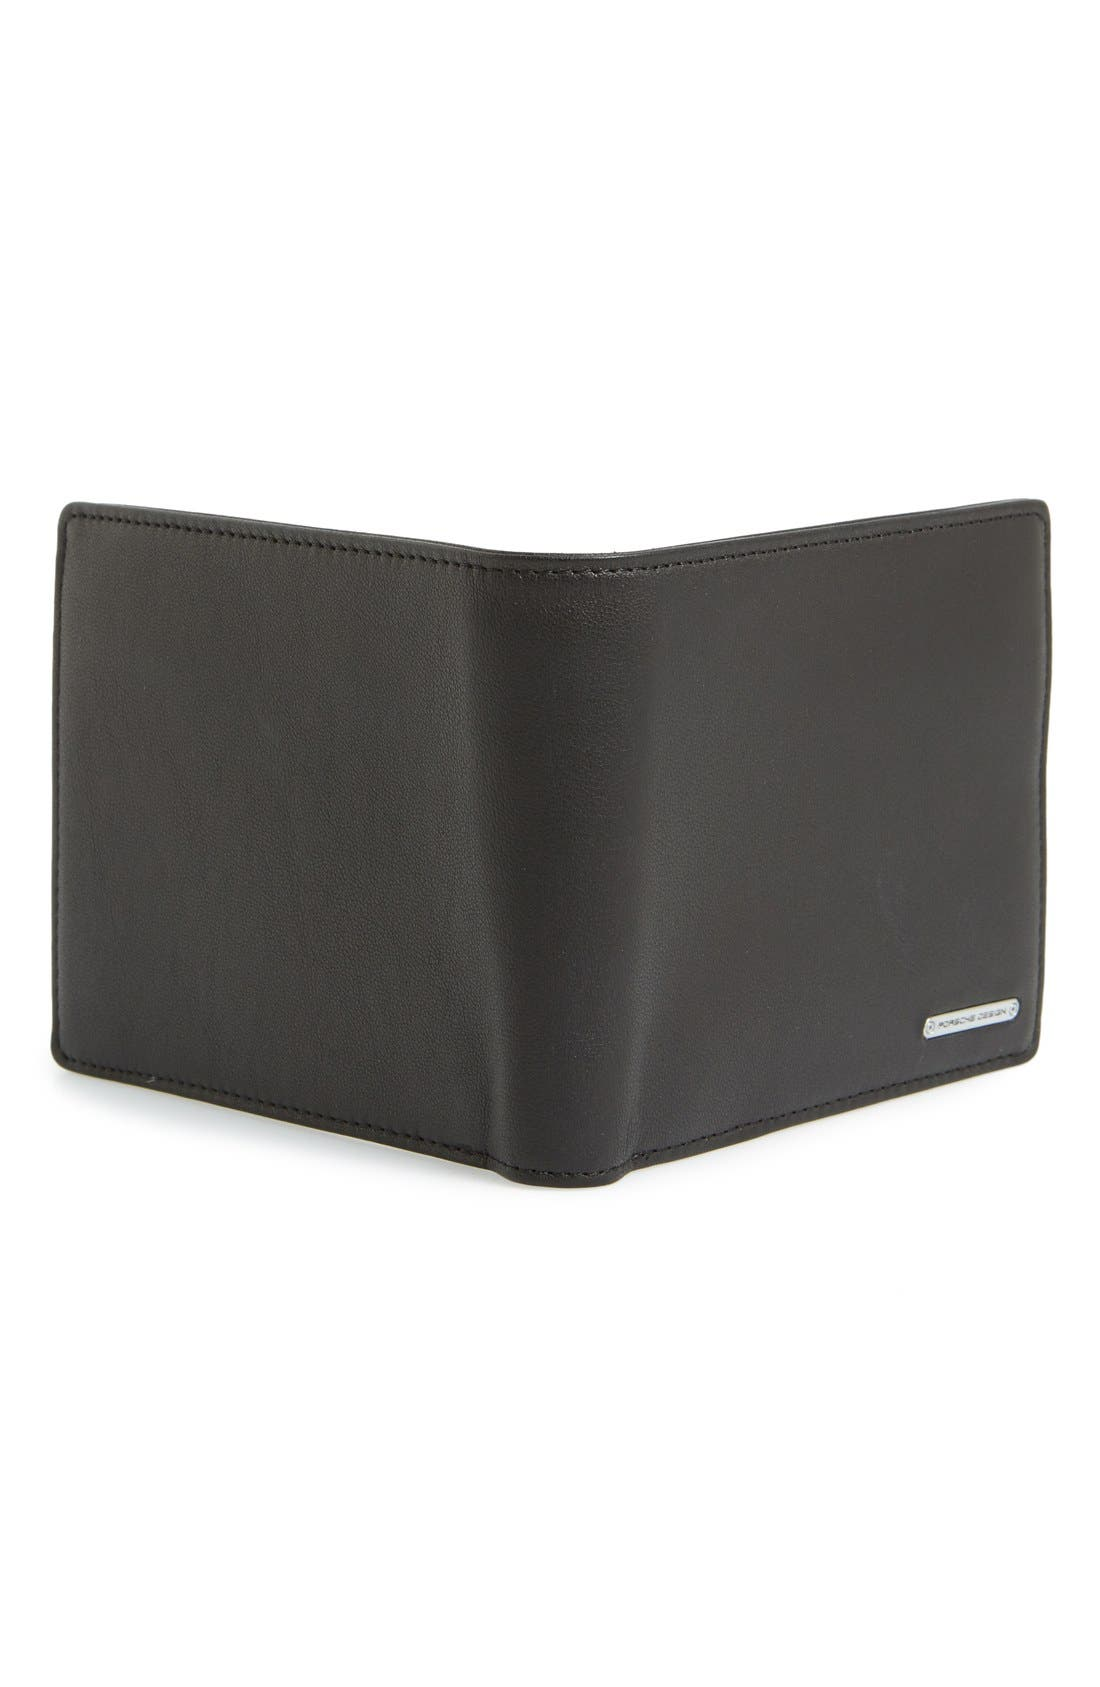 'CL2 2.0' Leather Billfold Wallet,                             Alternate thumbnail 3, color,                             001